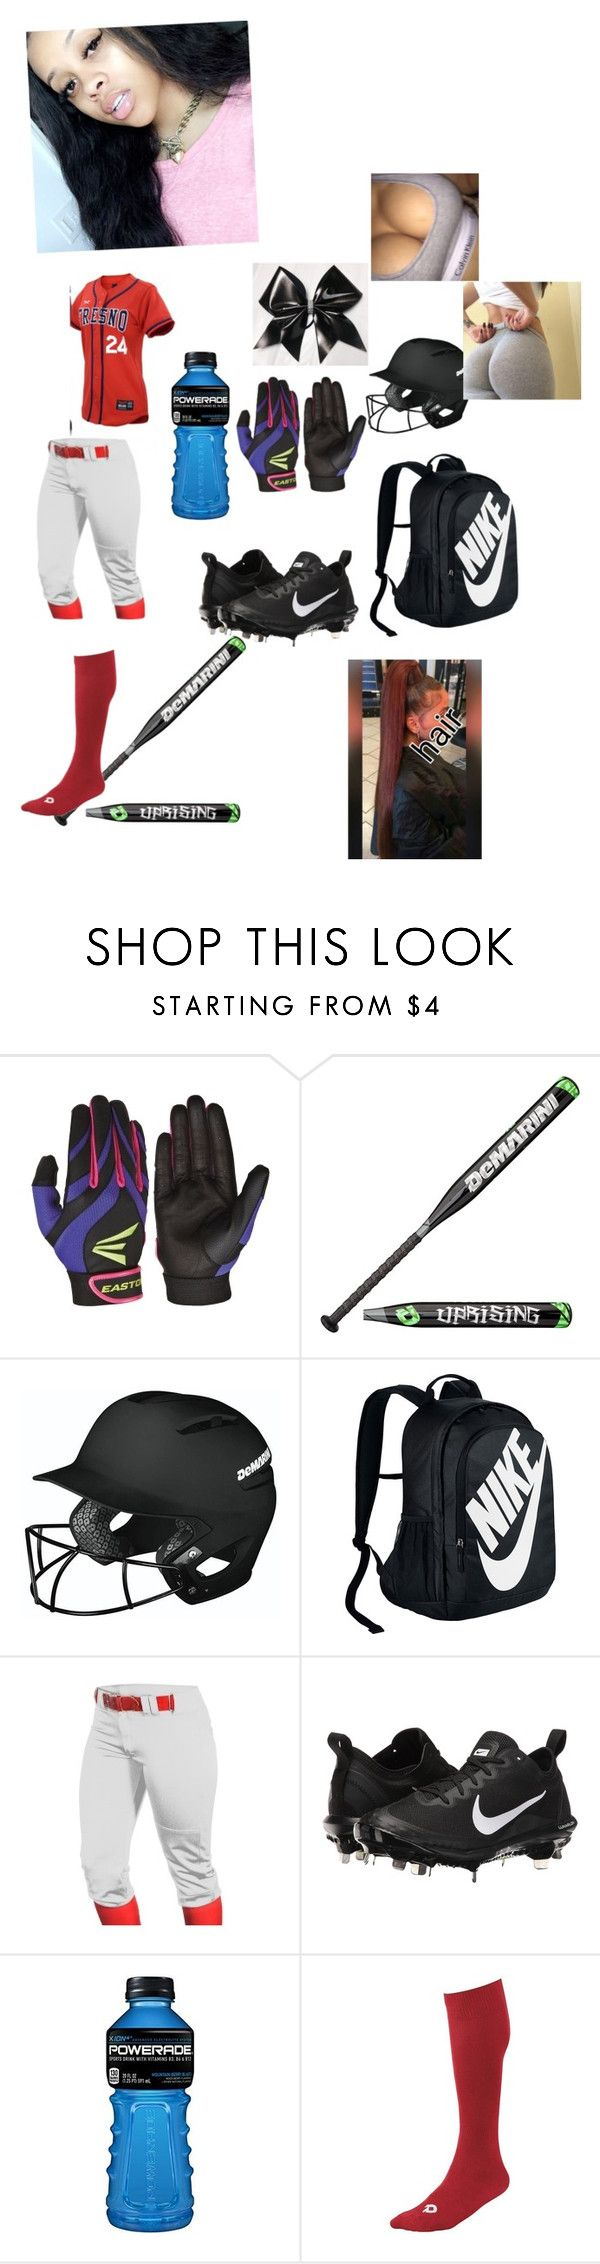 """softball game tonight-lil reh💜👅"" by starbucksanons ❤ liked on Polyvore featuring EASTON, DeMarini, NIKE and Louisville Slugger"